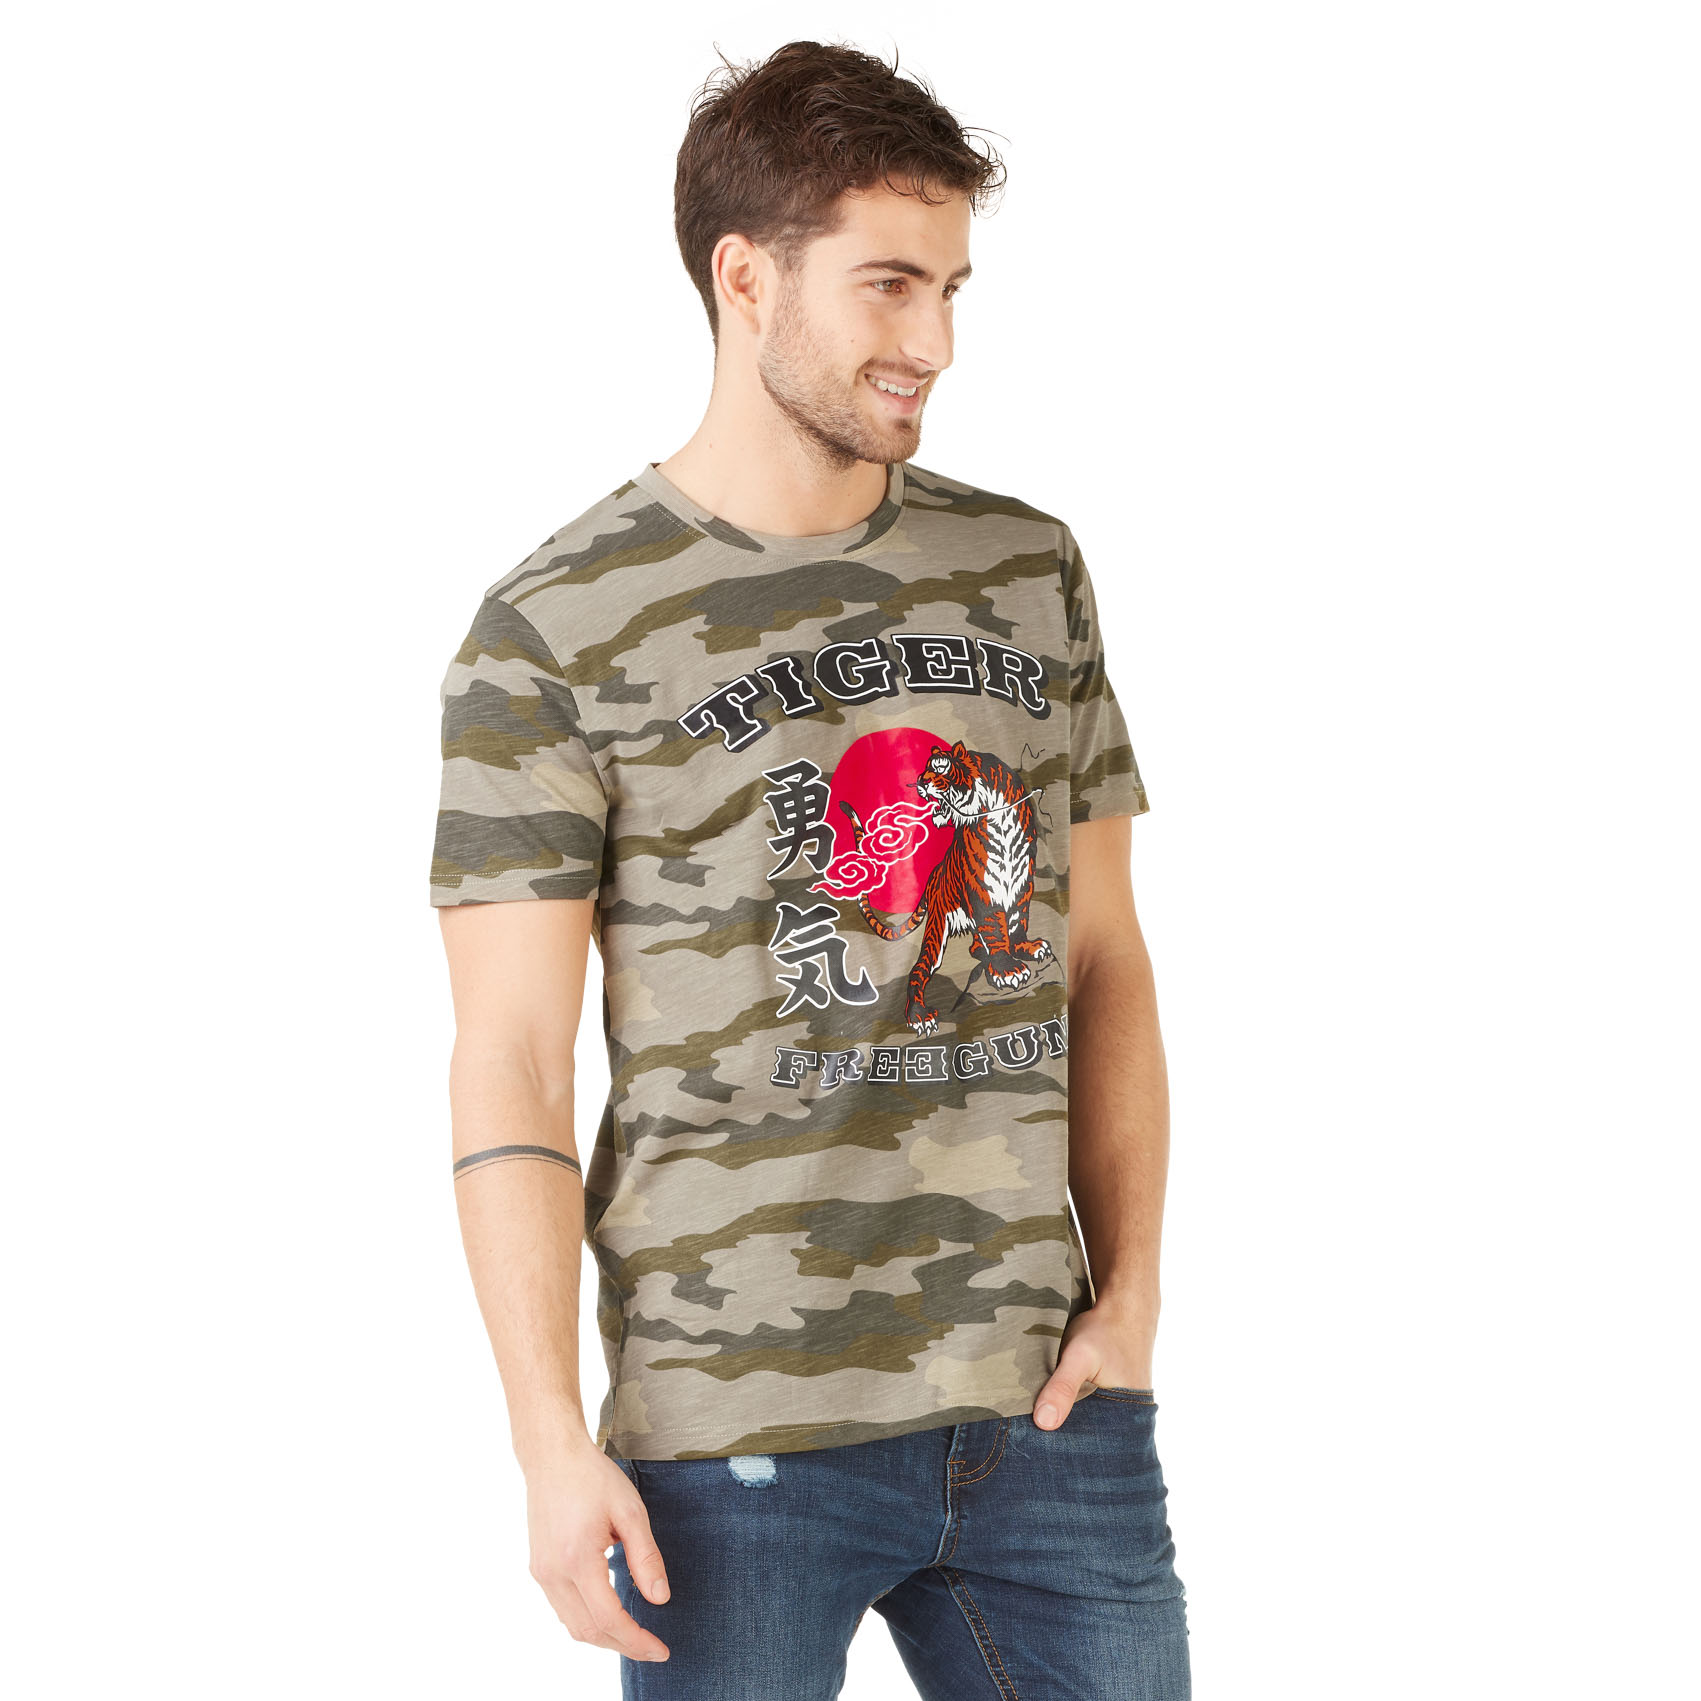 T-shirt homme freegun tiger imprimé (photo)